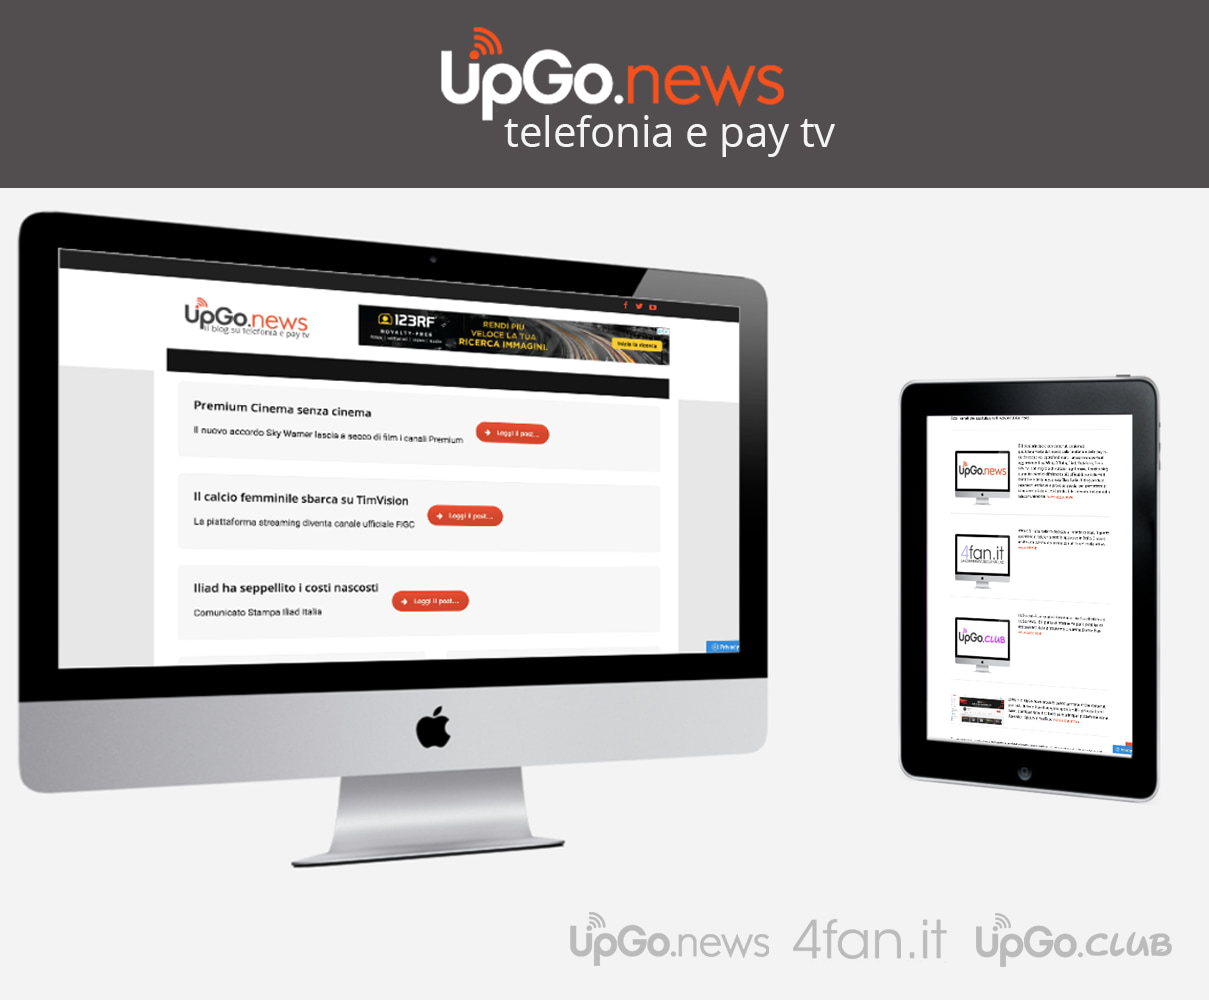 UpGo.news telefonia e pay tv